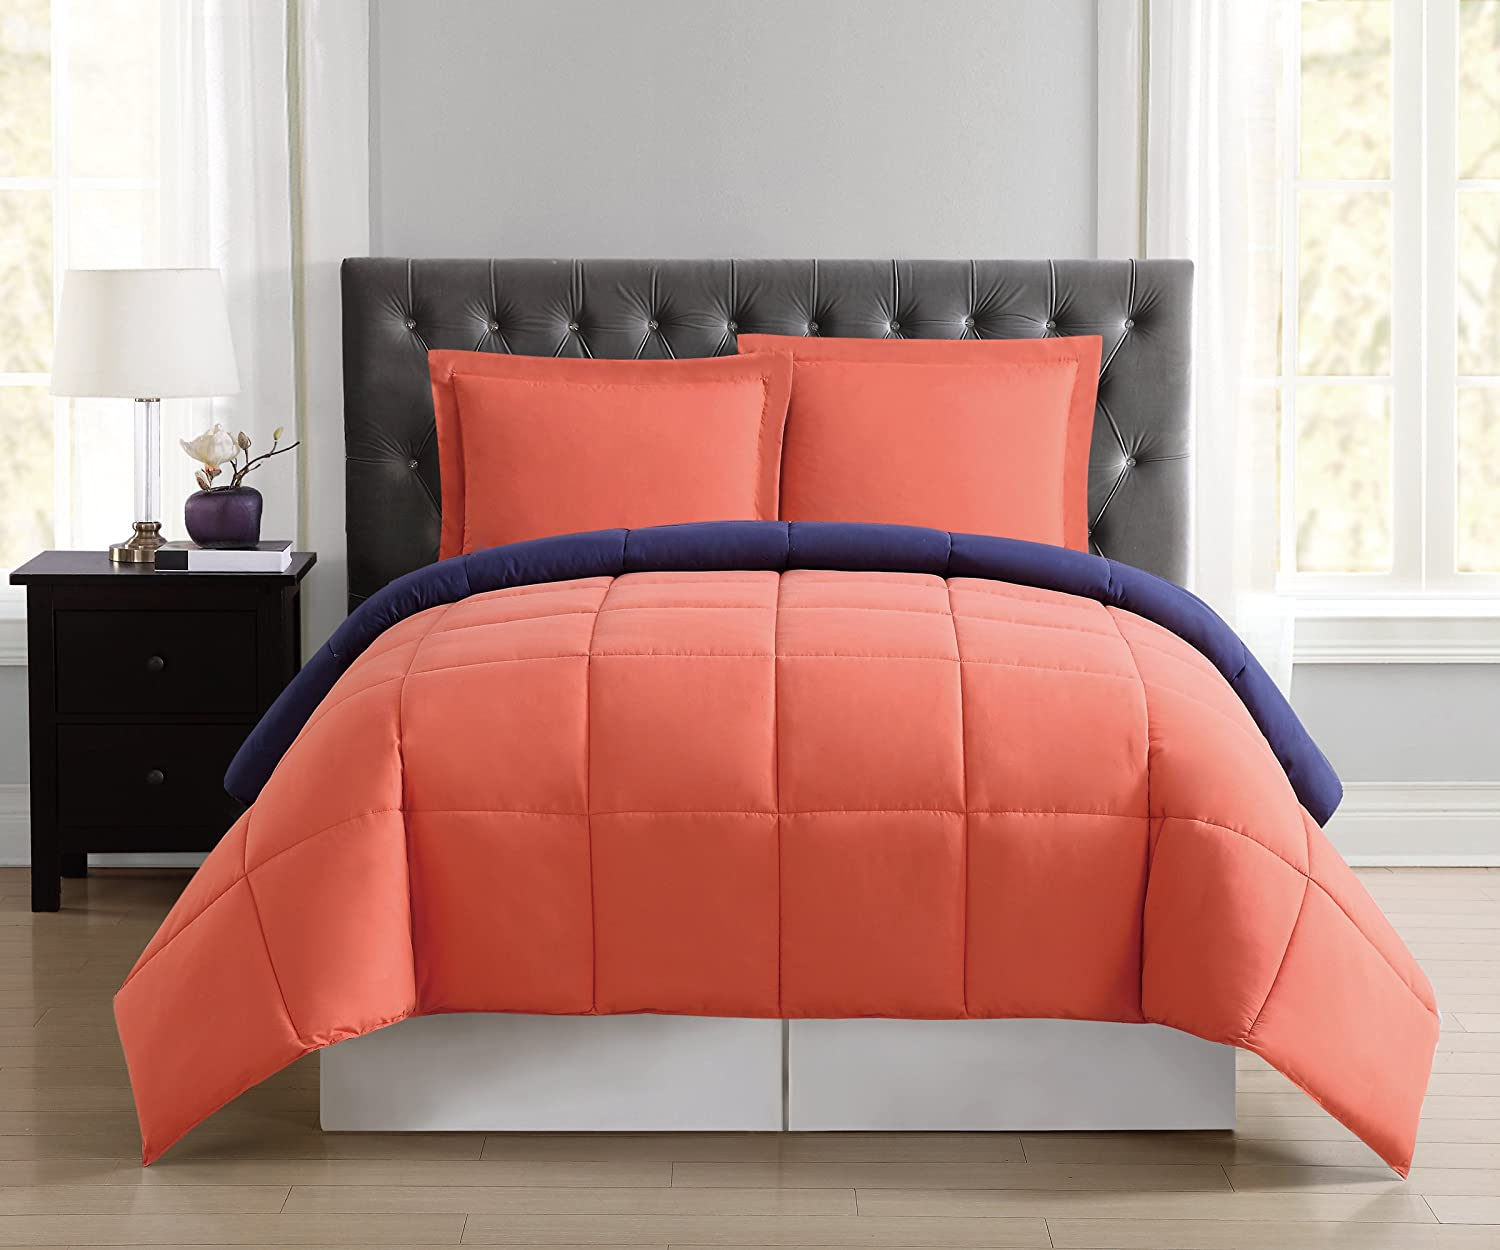 Truly Soft Everyday Reversible Comforter Ranking TOP17 Queen Orange Full Colorado Springs Mall Set